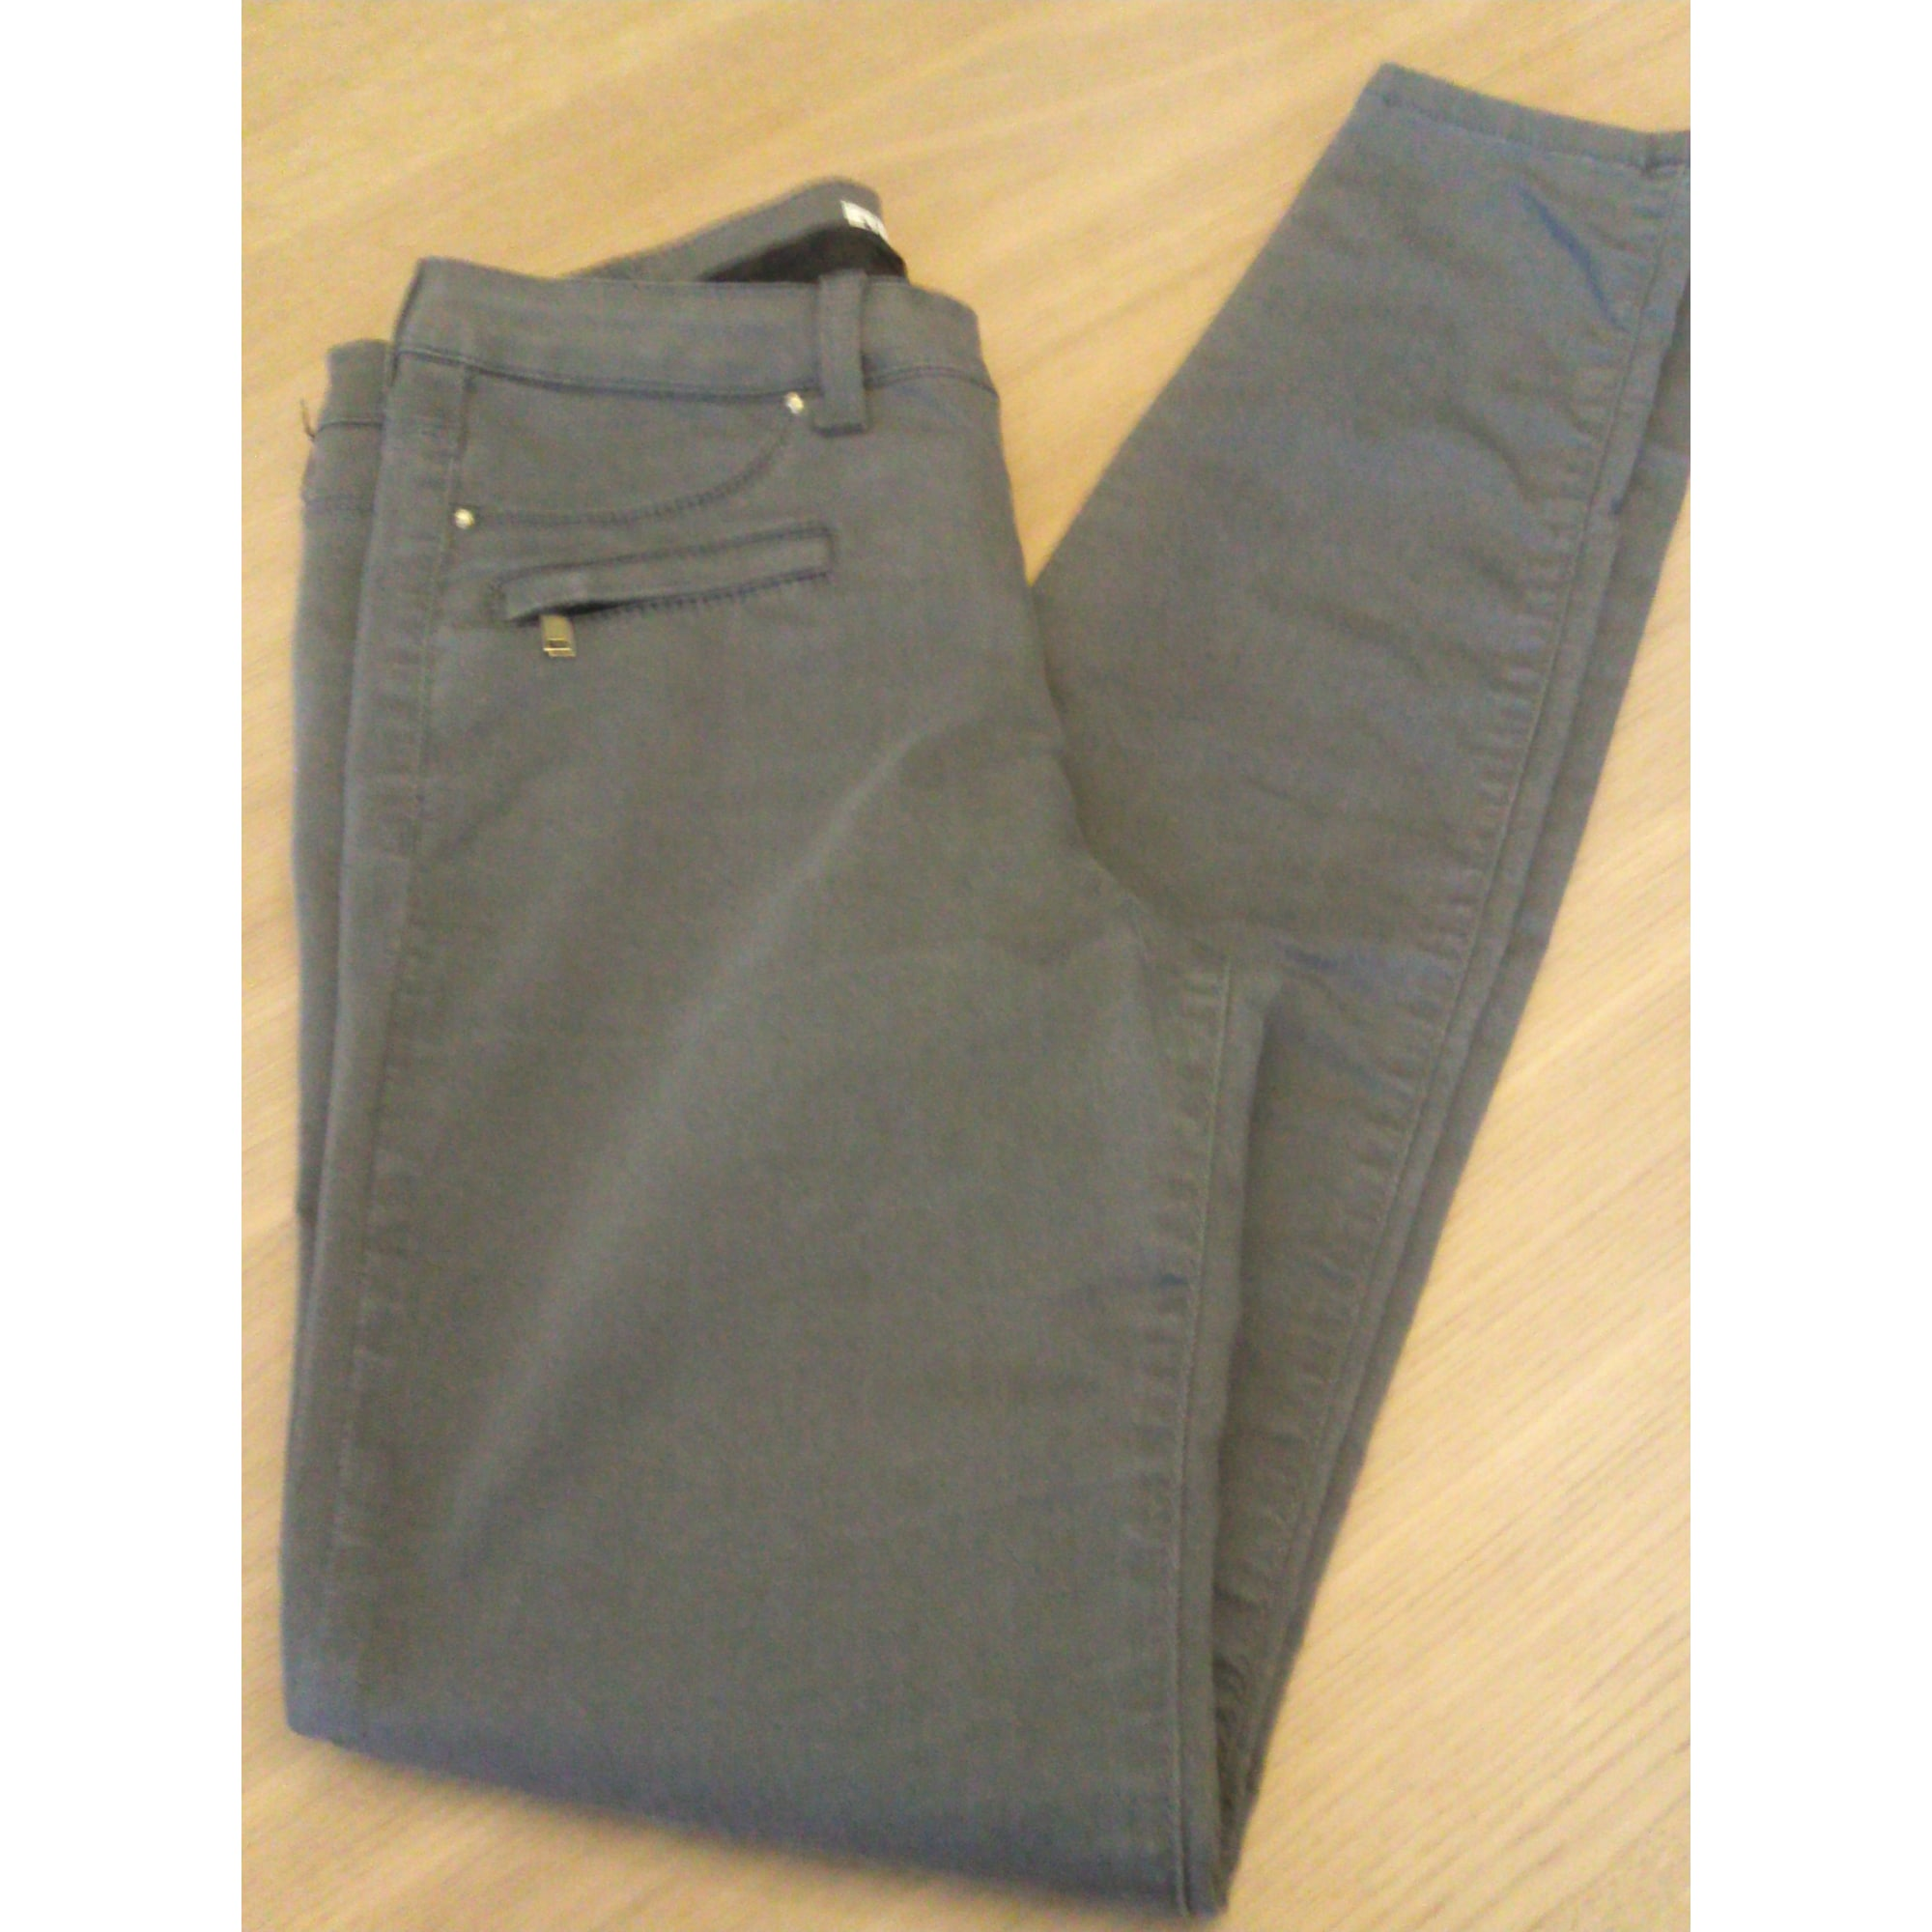 Jeans slim SUD EXPRESS Gris, anthracite